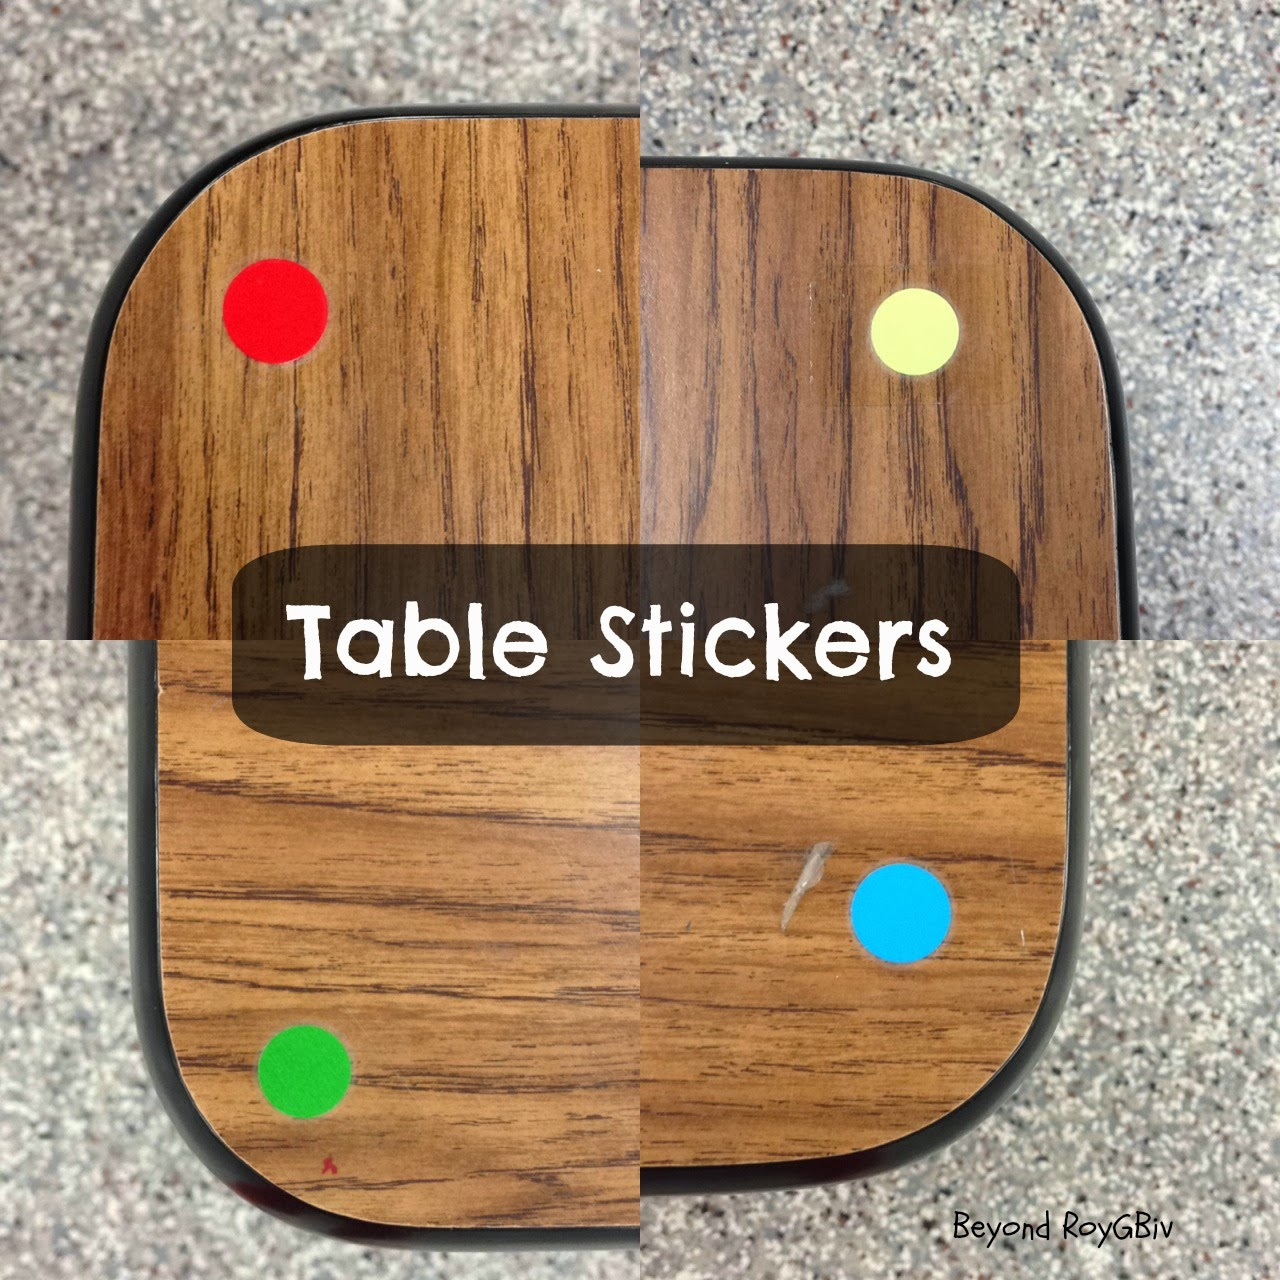 Beyond ROY G BIV Table Stickers -> Sticker Table